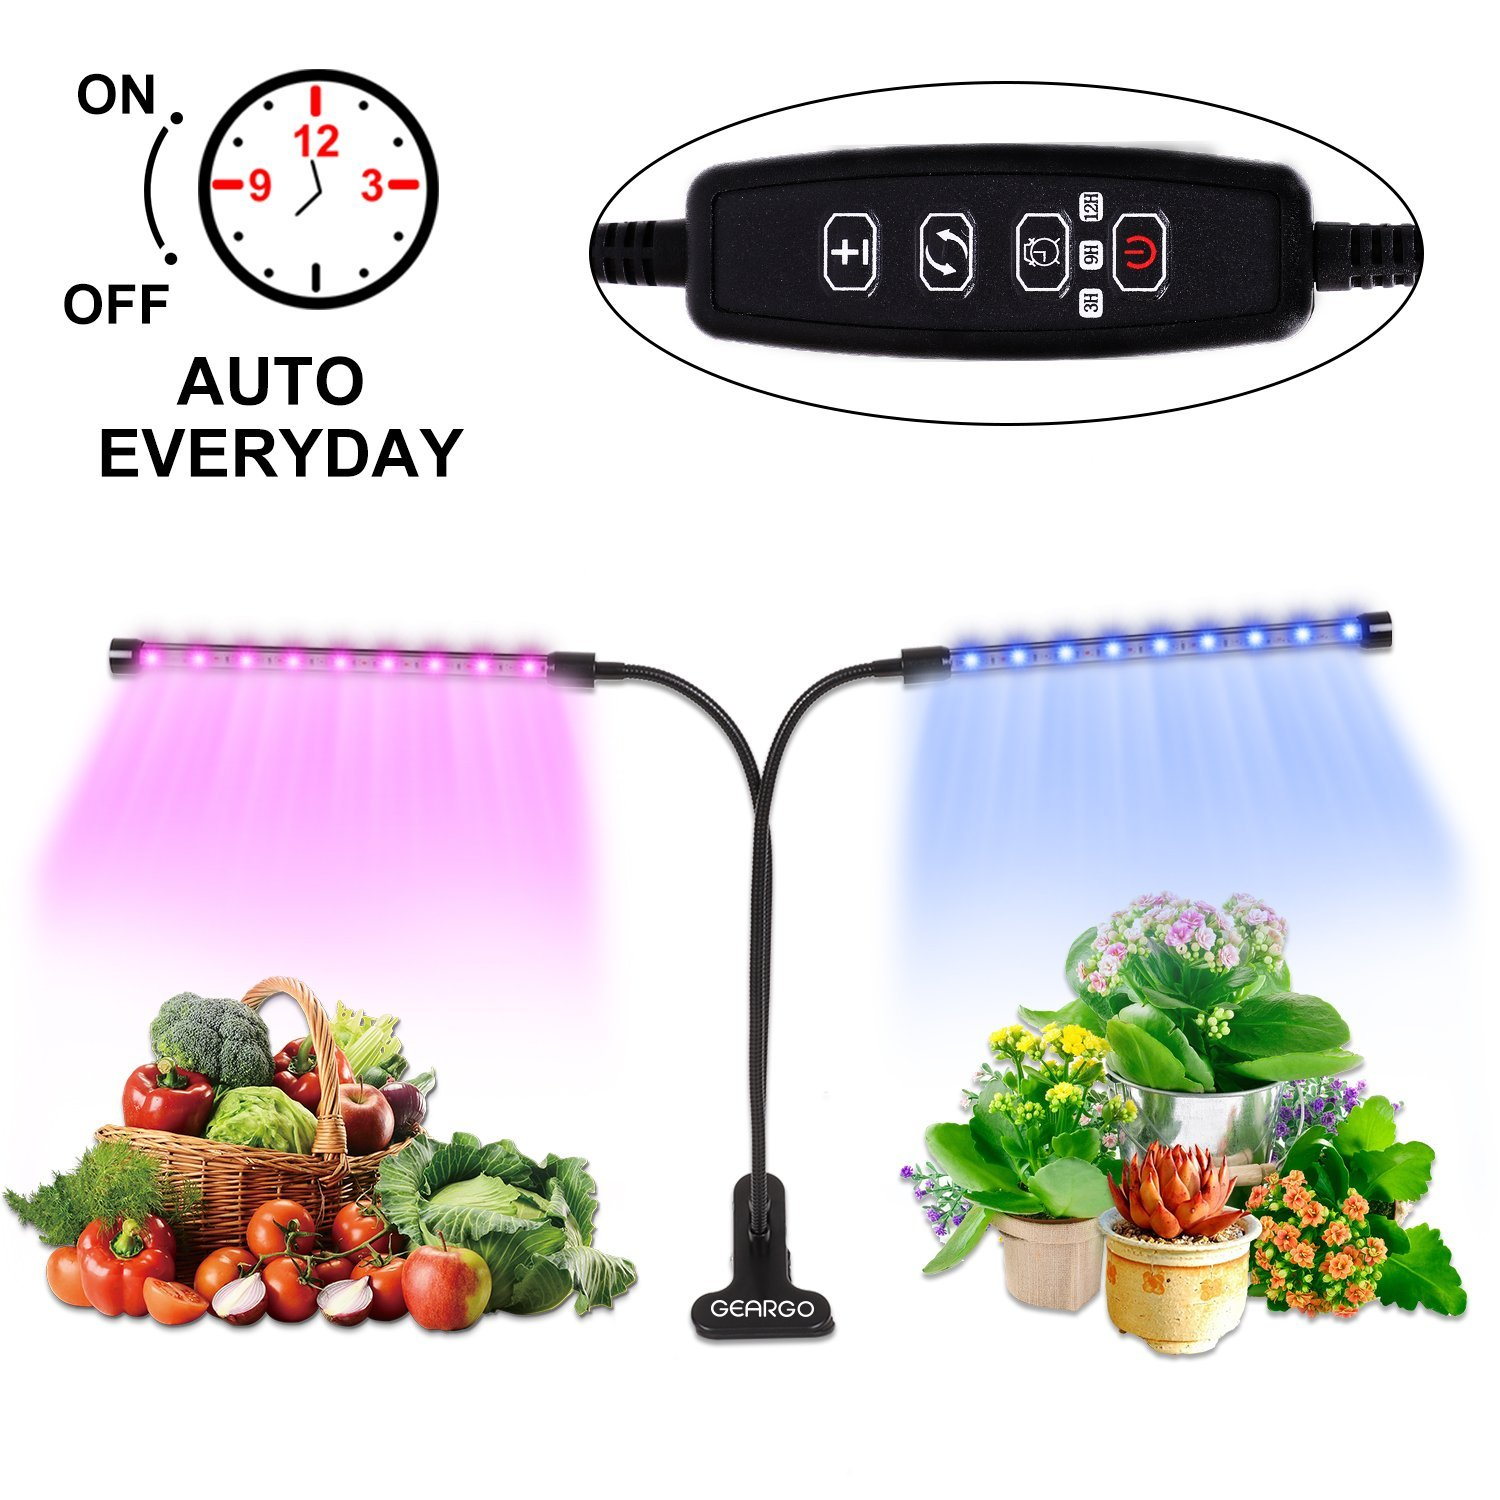 Plant Grow Light, GEARGO 18W Led Grow Lamp AUTO Turn ON/Off, 3H/9H/12H Timers 36 LED Dual Head 5 Dimmable Level 360 Degree Gooseneck Plant Light Bulbs for Indoor Plants Gardening [2018 Upgraded]